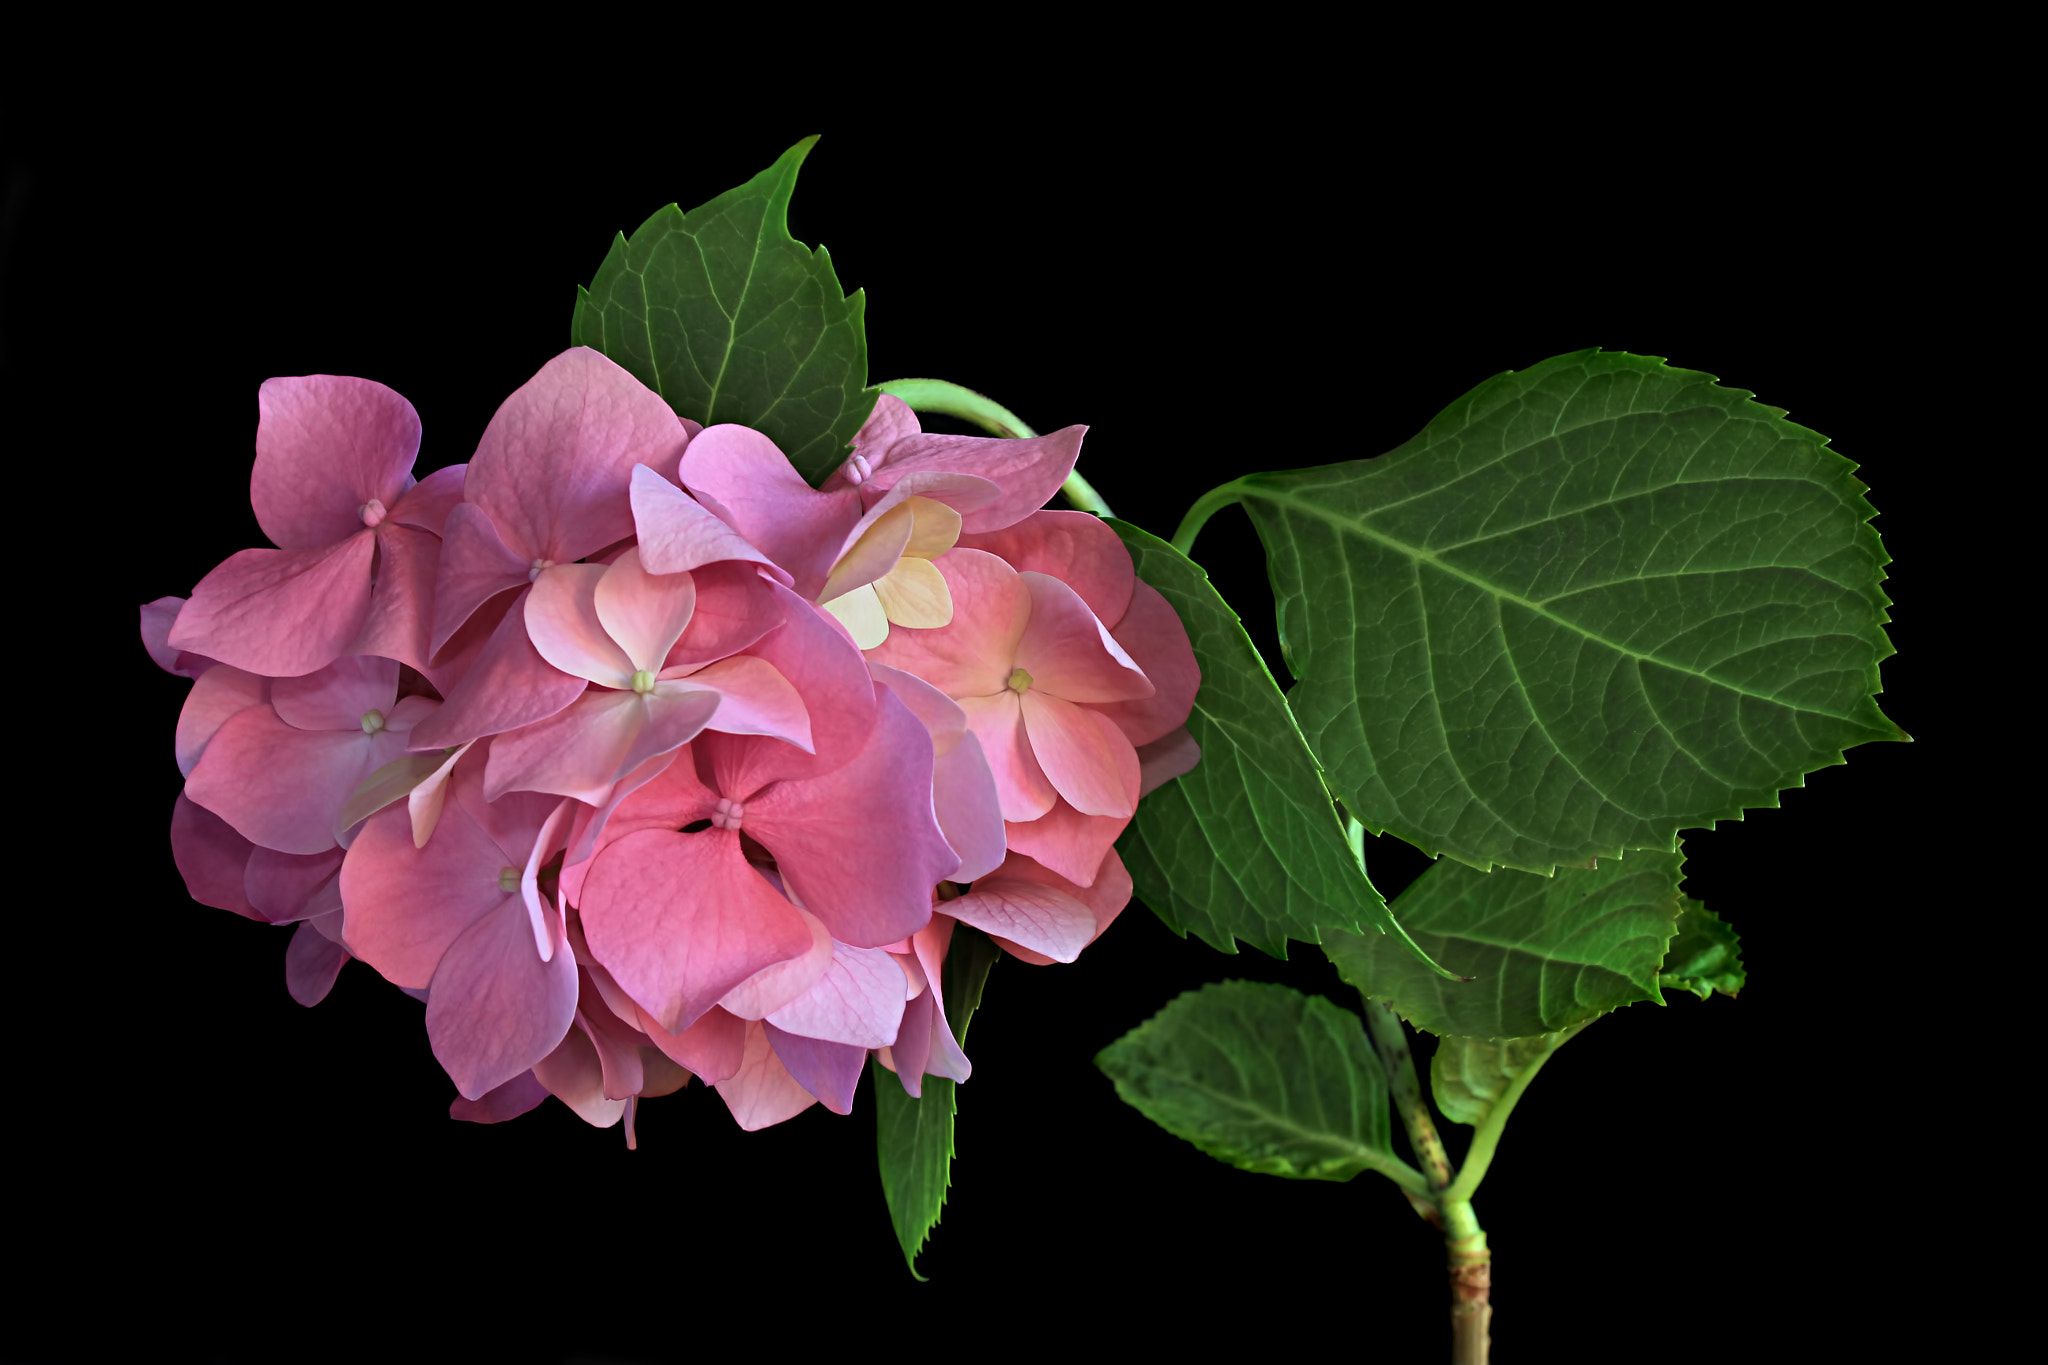 Photograph Hydrangea by Vendenis   on 500px